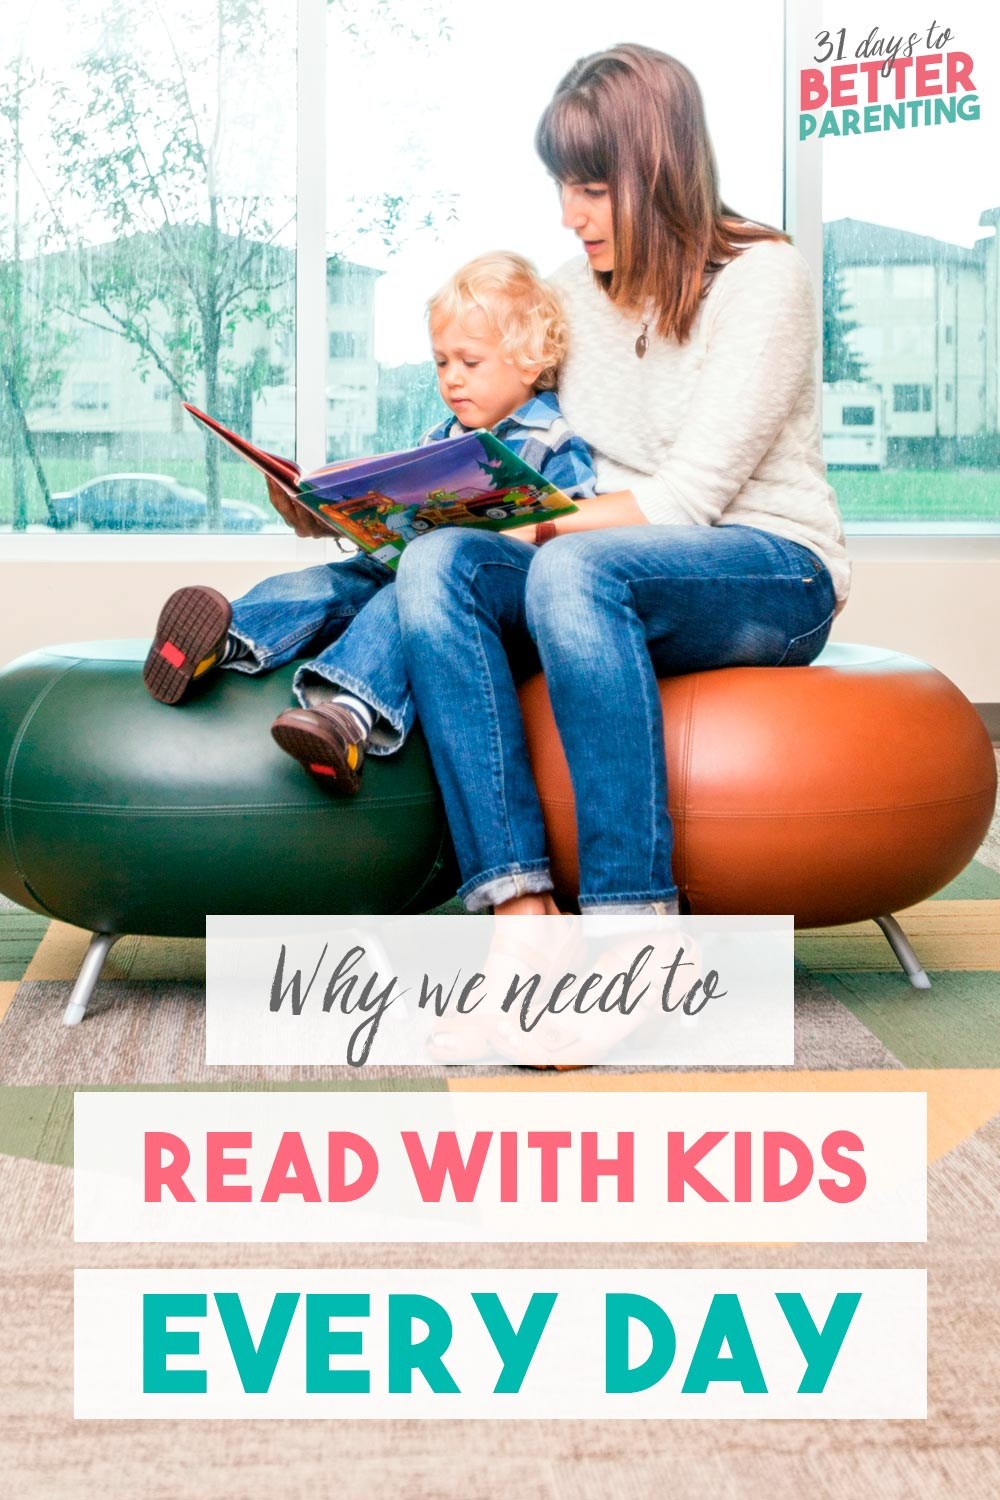 Mom reading with son: Why we need to read with kids every day